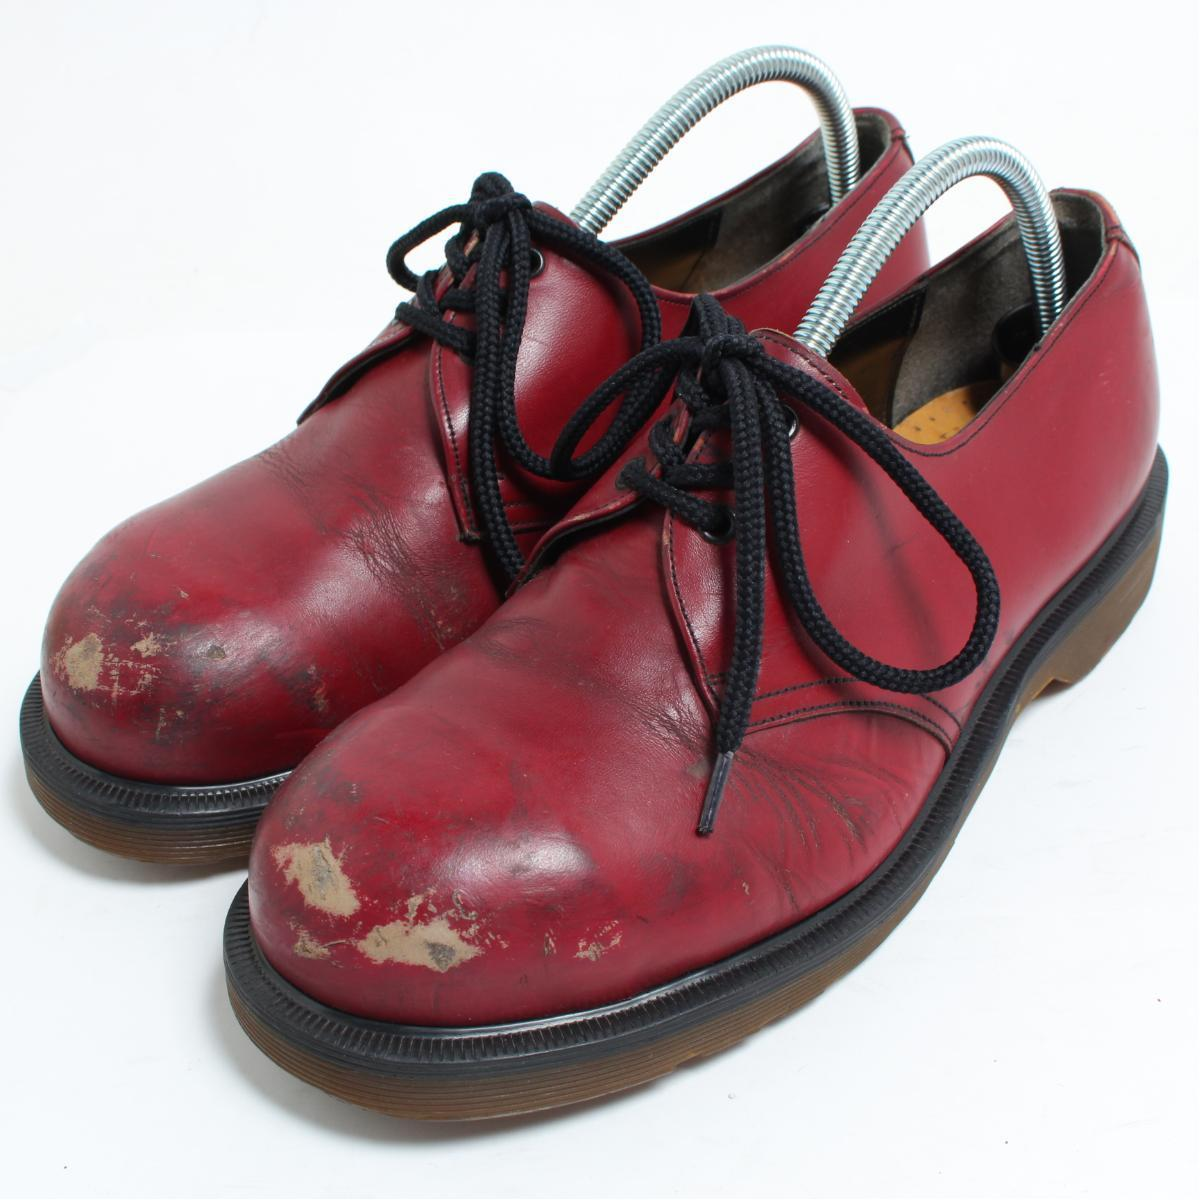 9356ac10a595 UK9 men 27.5cm  bon0814 made in the doctor Martin Dr.Martens SKECHERS  collaboration 3 hall shoes U.K.